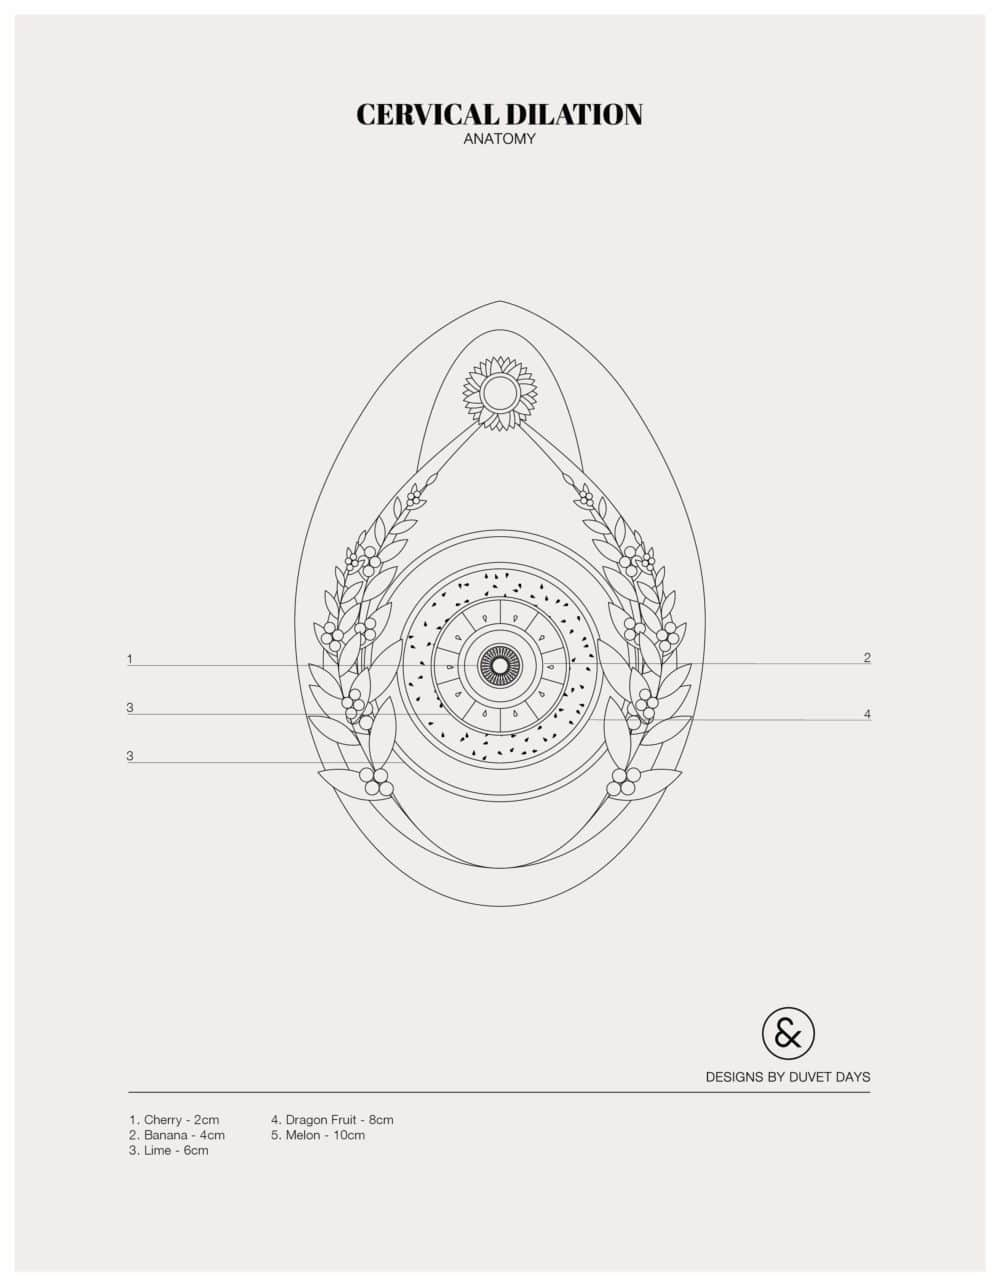 Designs By Duvet Days_8.5x11_Cervical Dilation_Colouring Sheet_Preview